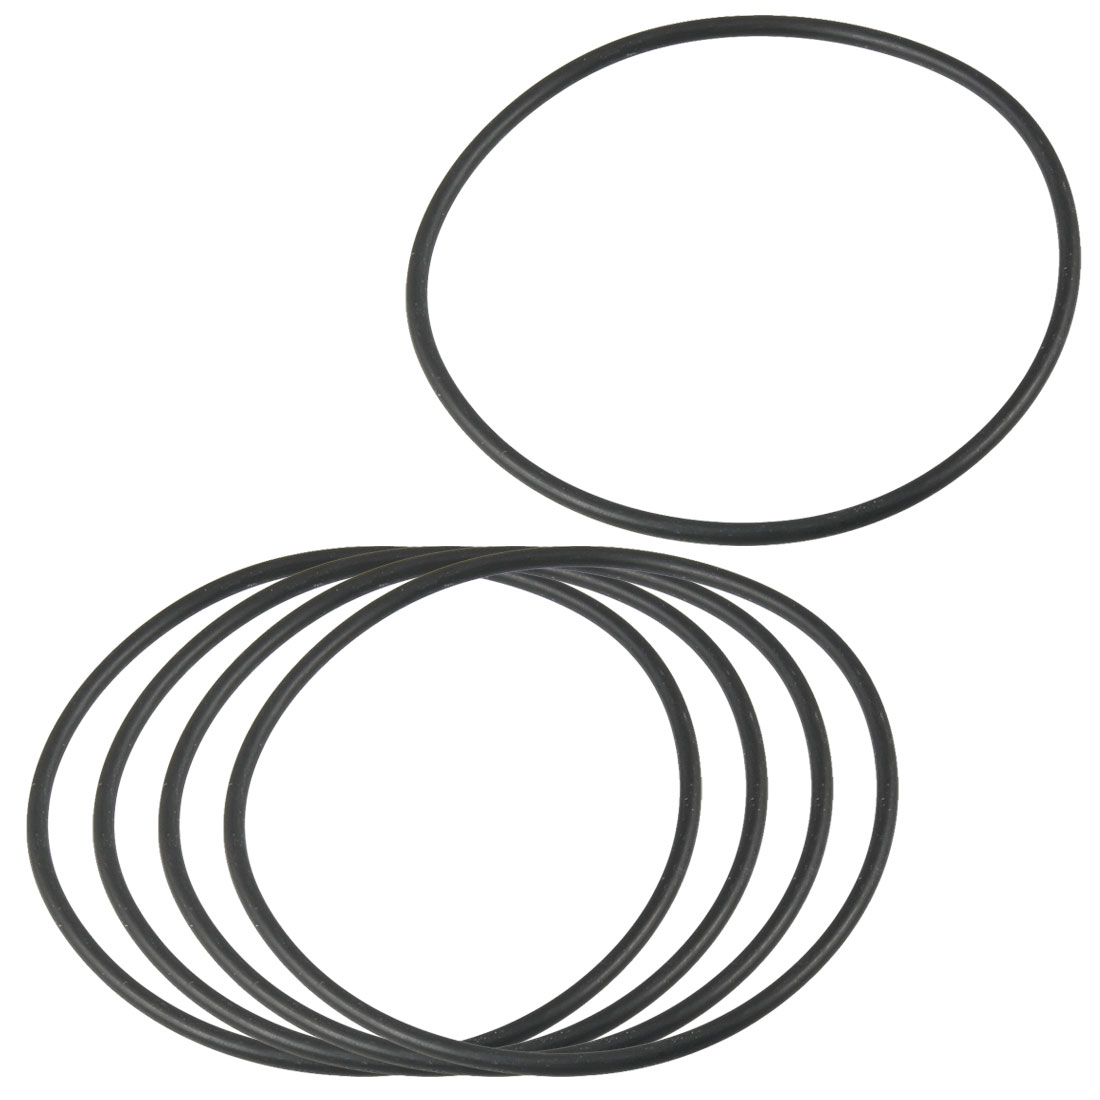 80mm x 2.4mm Flexible Rubber O Ring Sealing Washer Black 5 Pcs